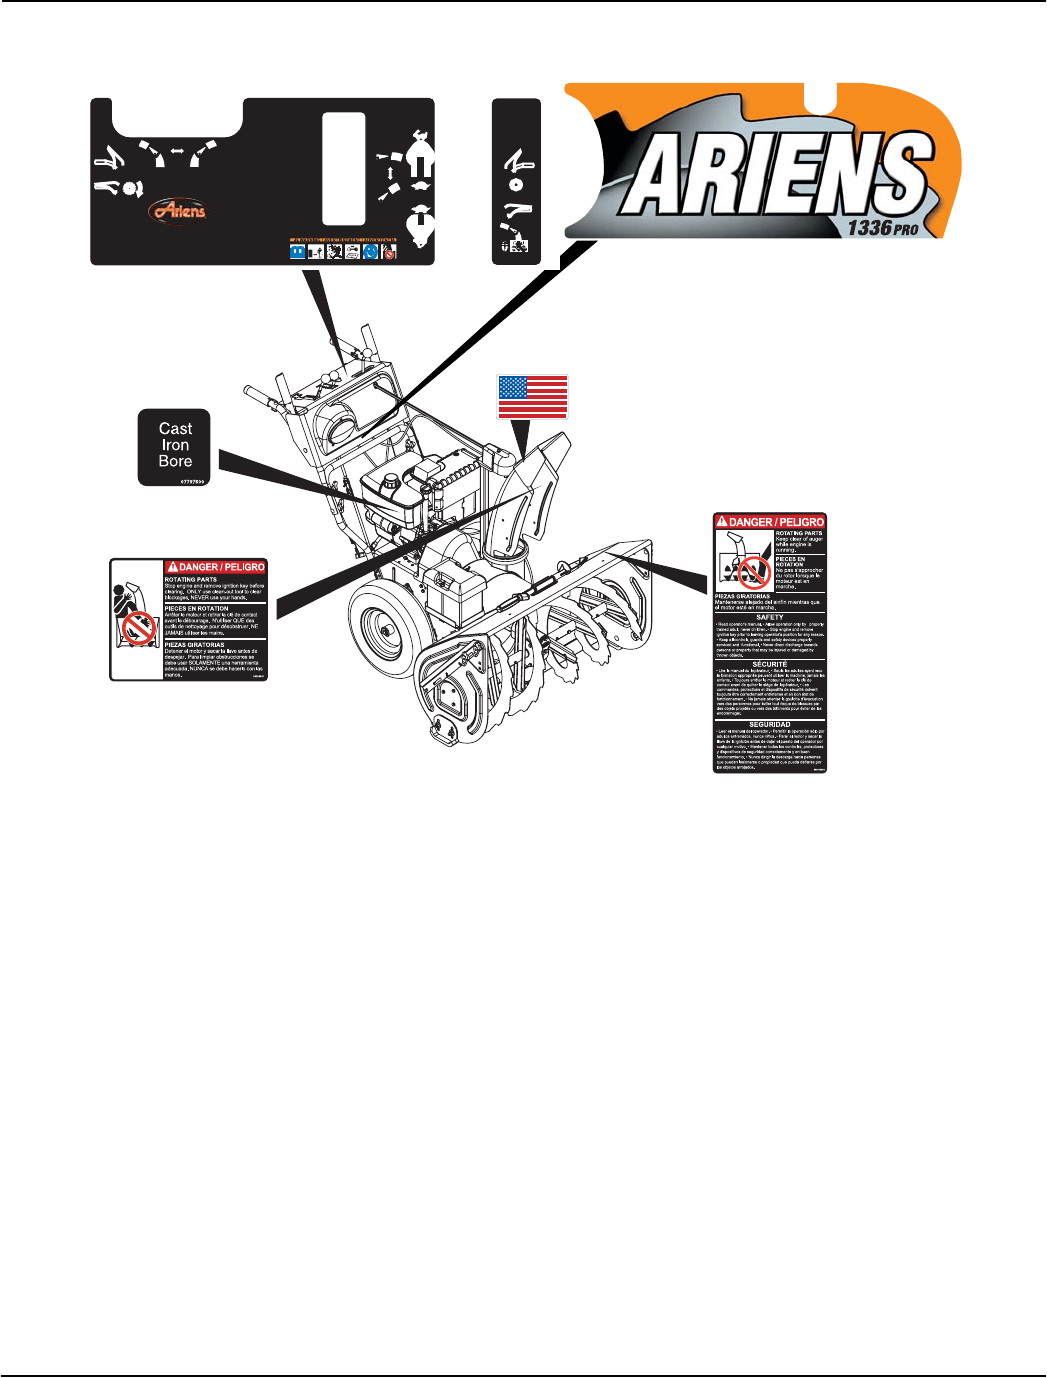 Bestseller: Ariens 926le Manual